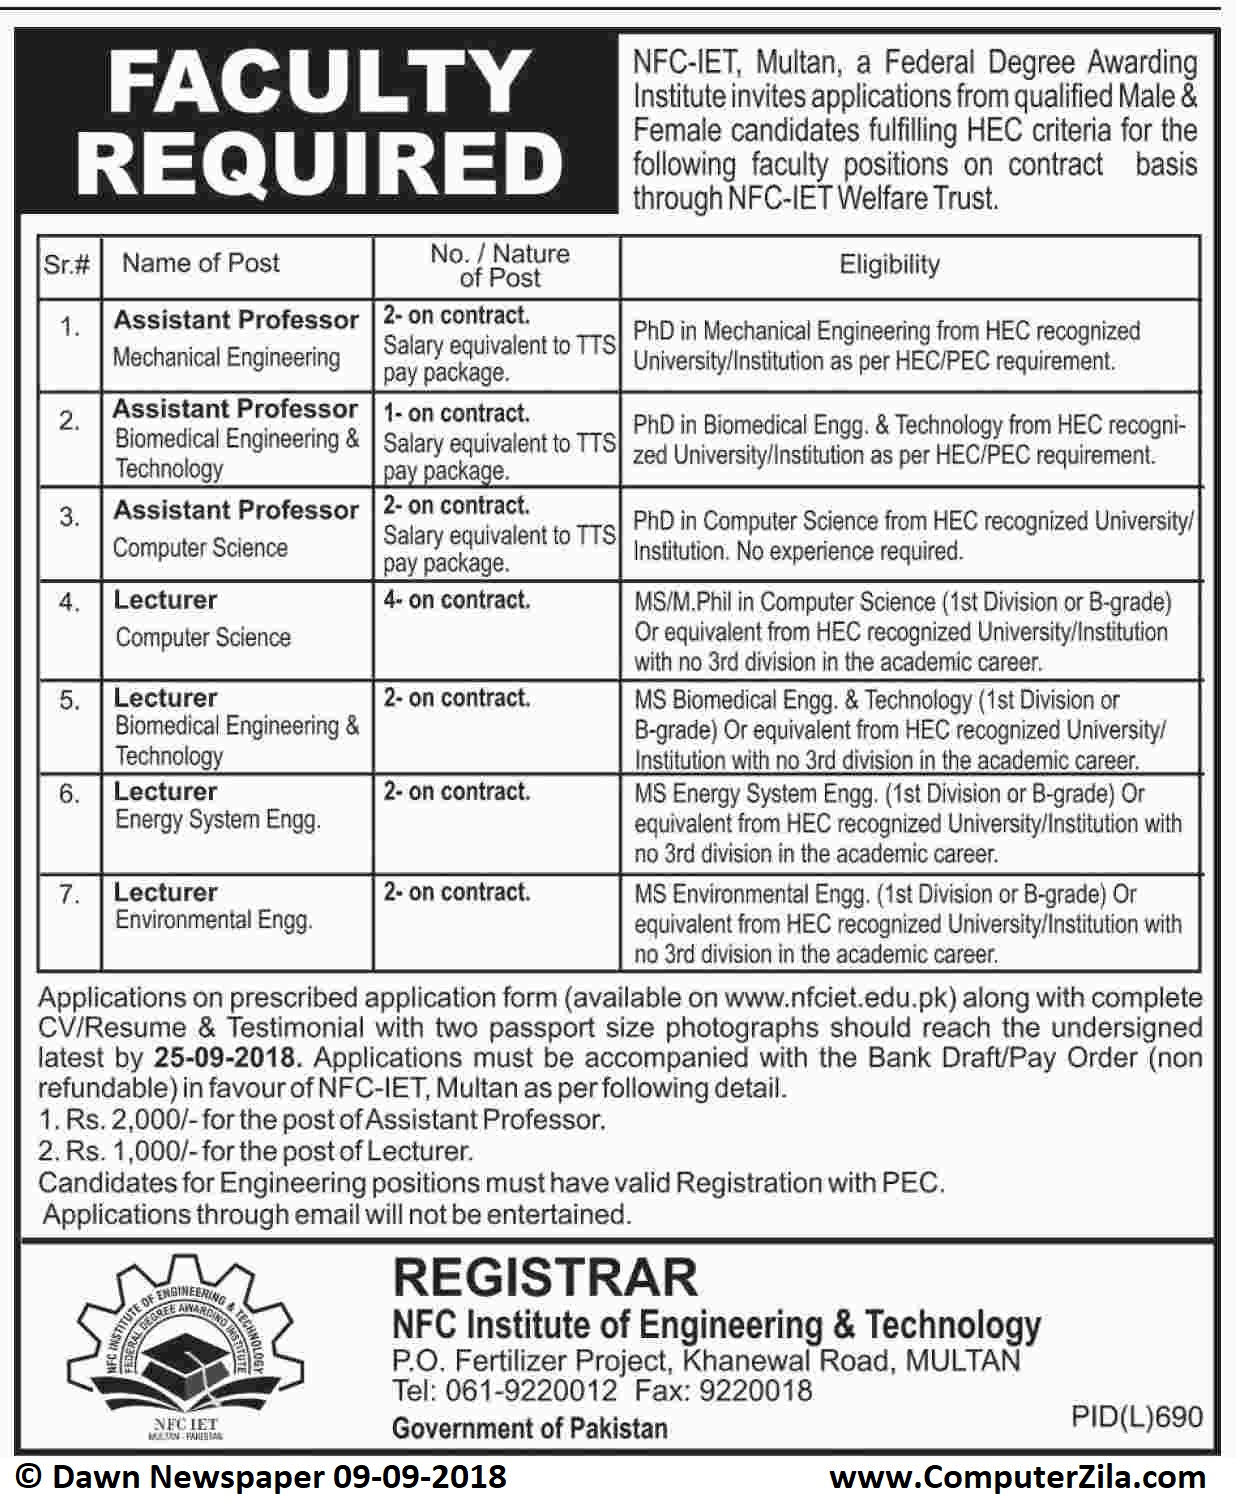 Faculty Required at NFC Institute of Engineering & Technology